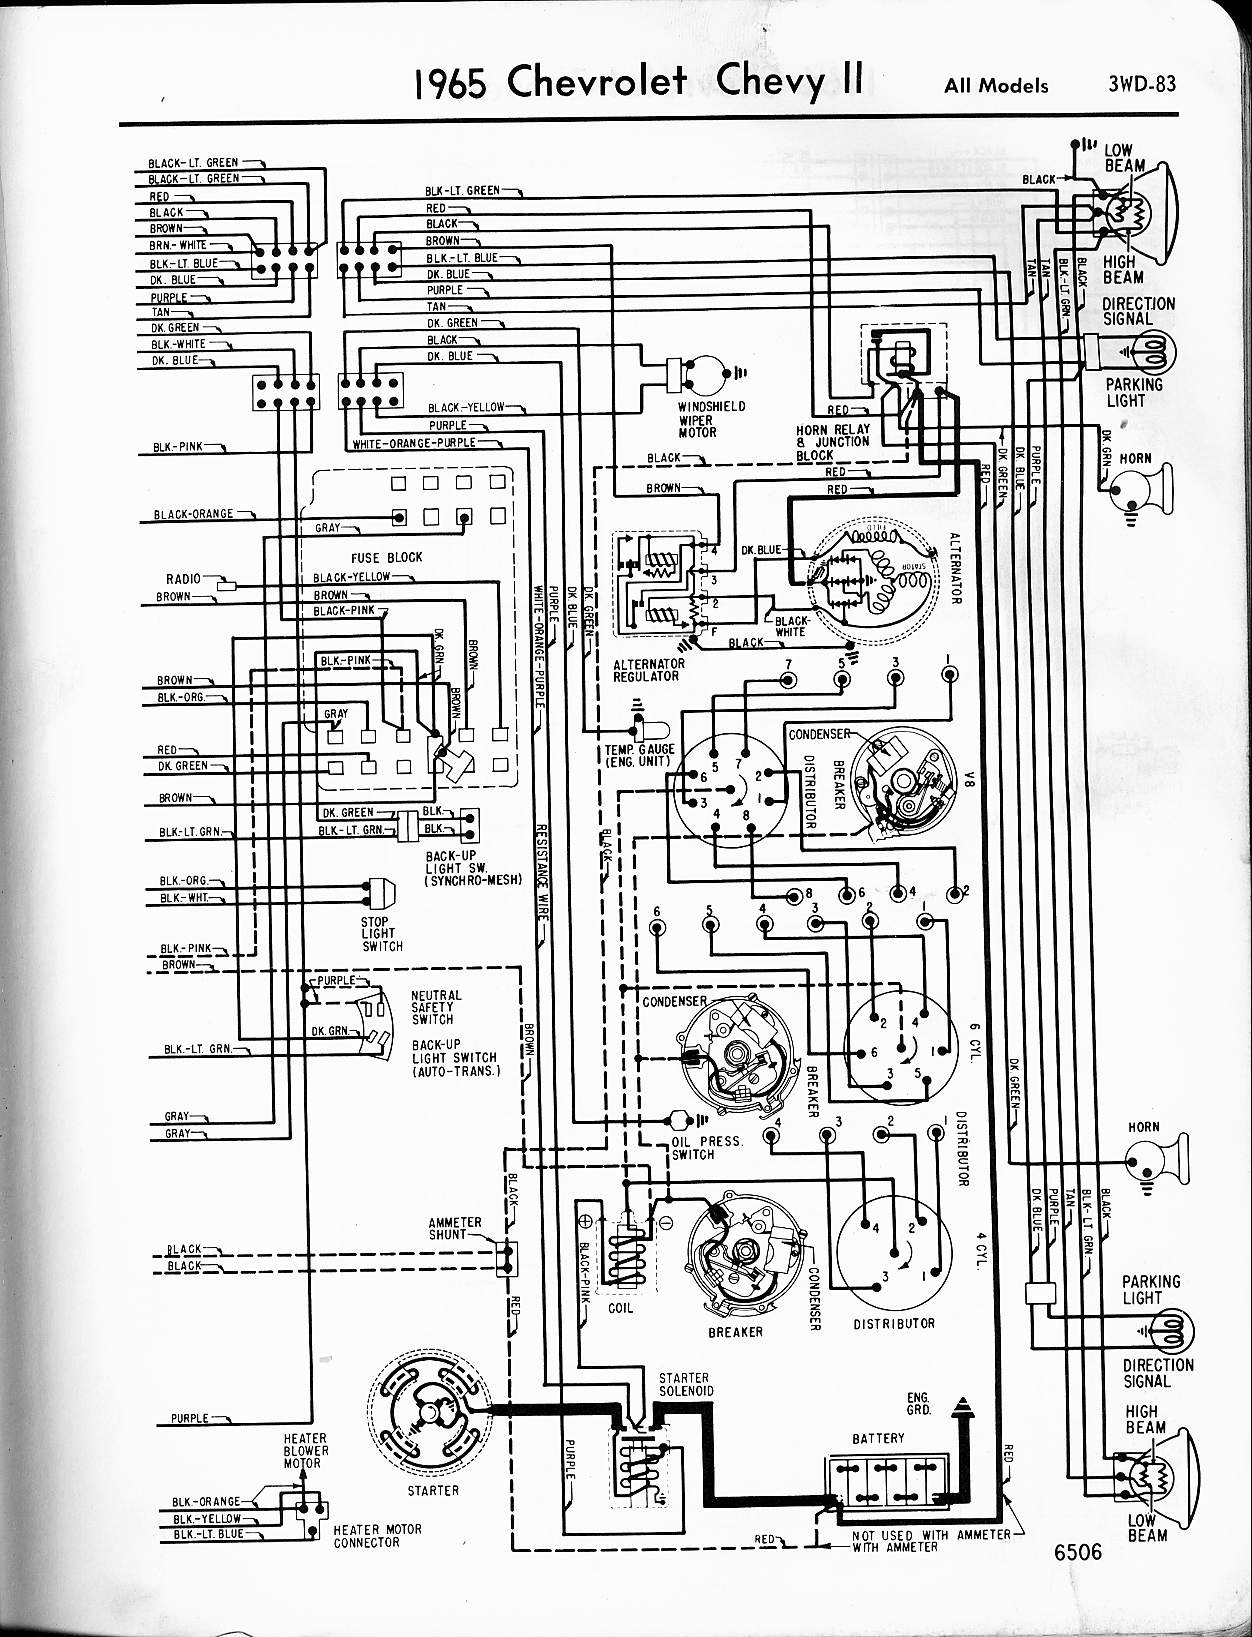 Light Switch Ignition Diagram